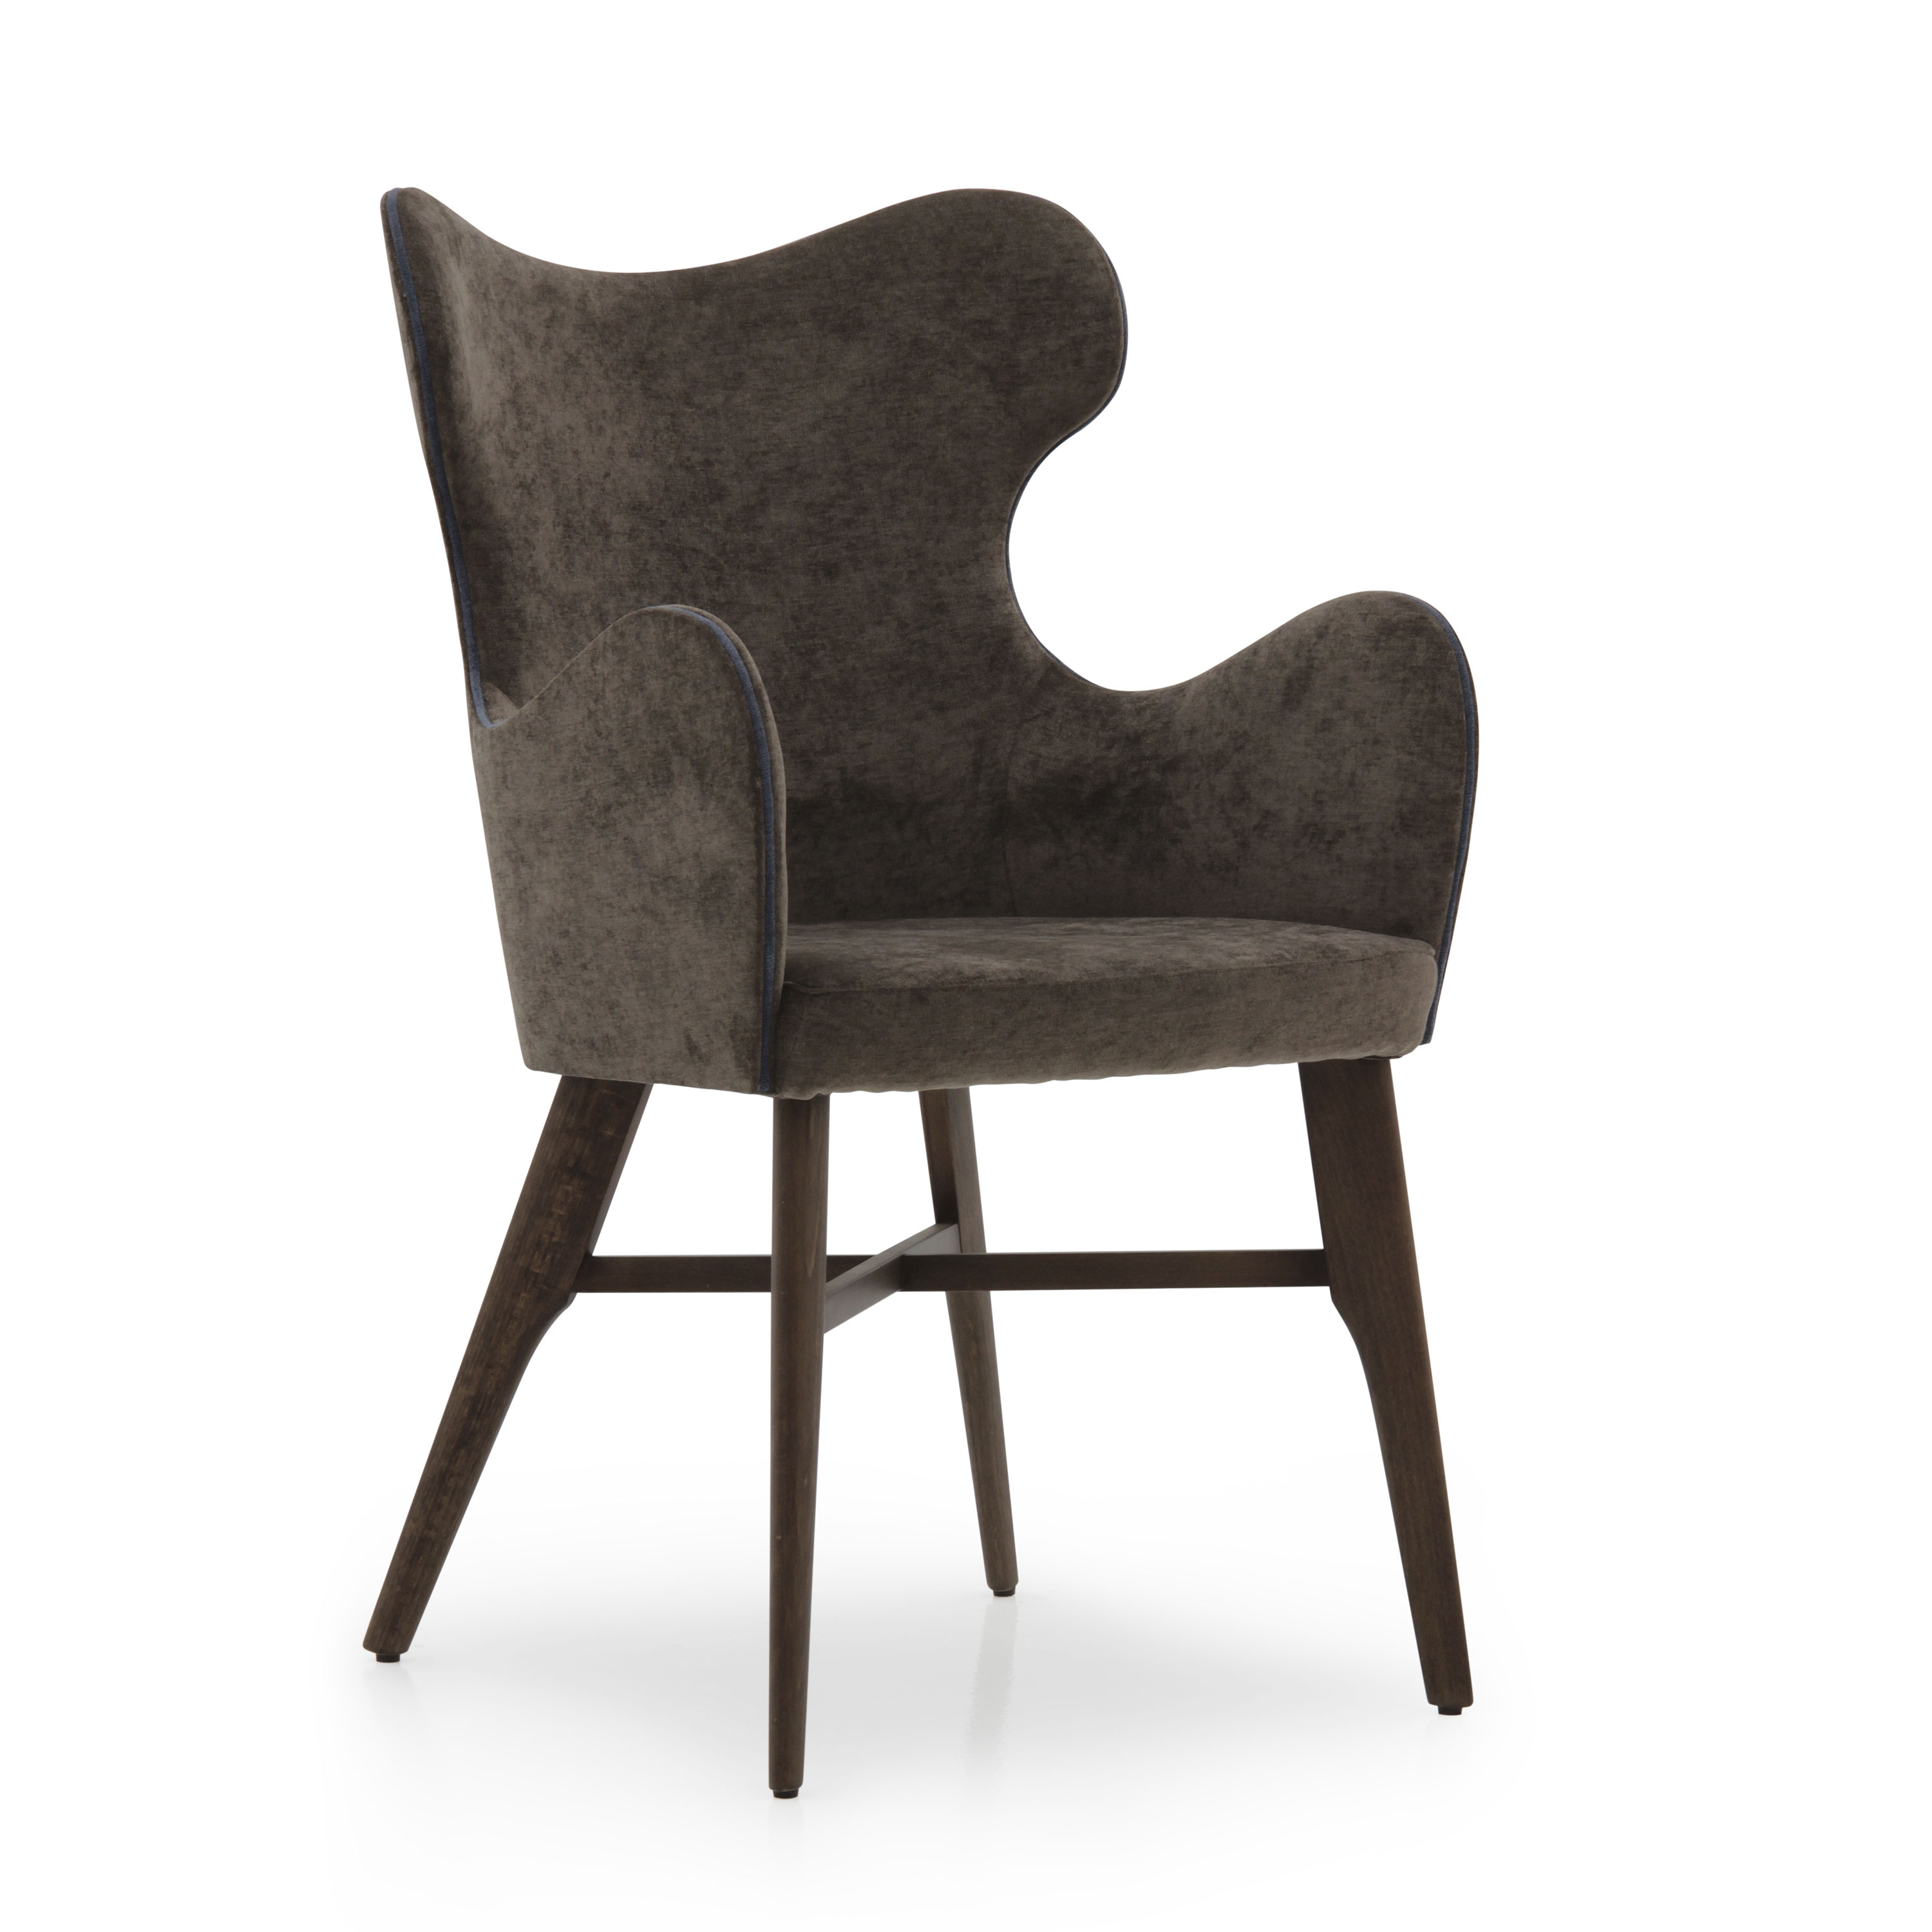 Modern style small armchair made of wood auribus 965 for Small contemporary armchairs